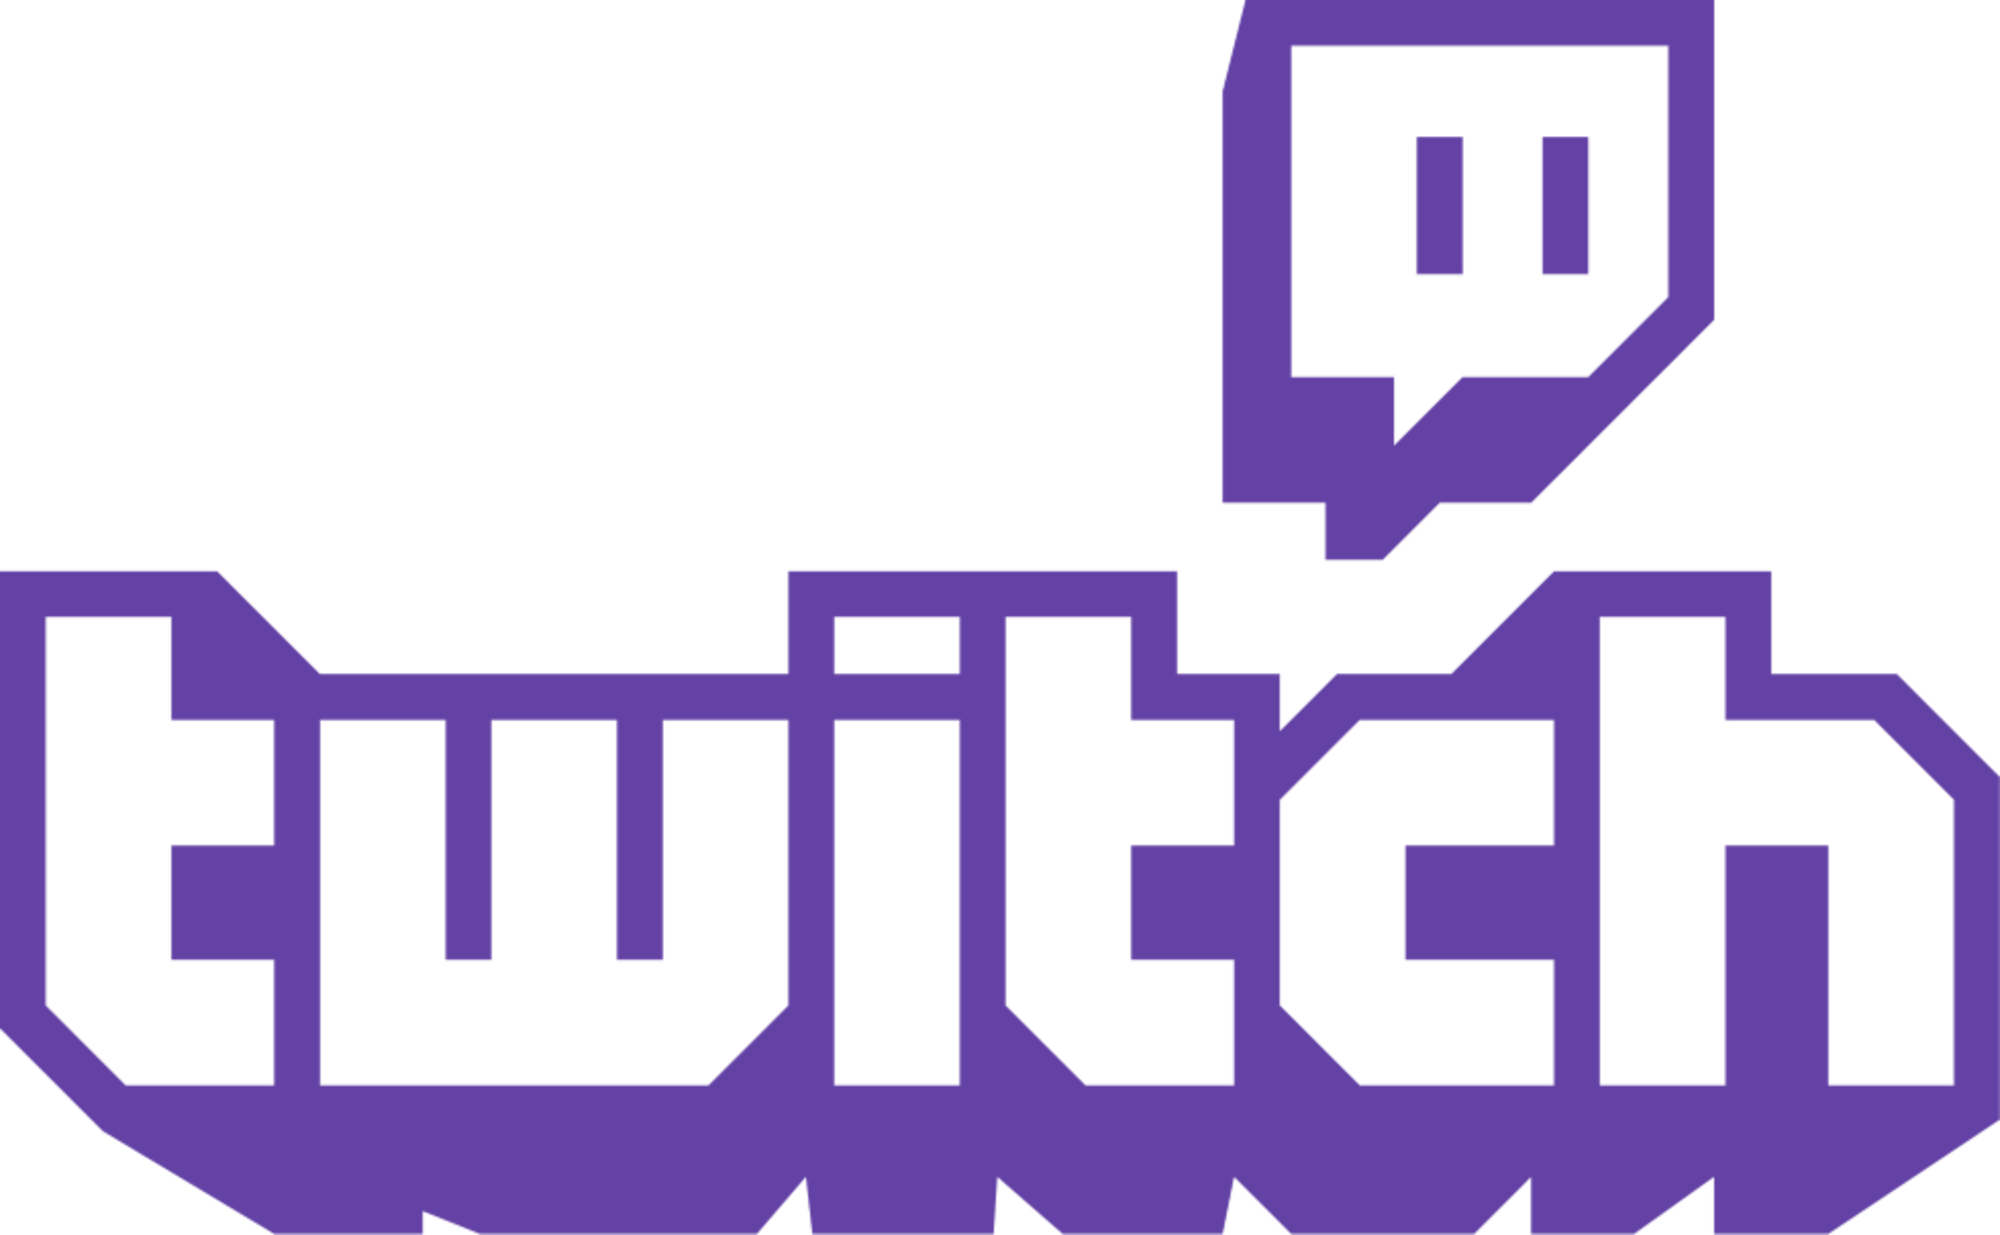 Ninja streamer png. Top twitch streamers to